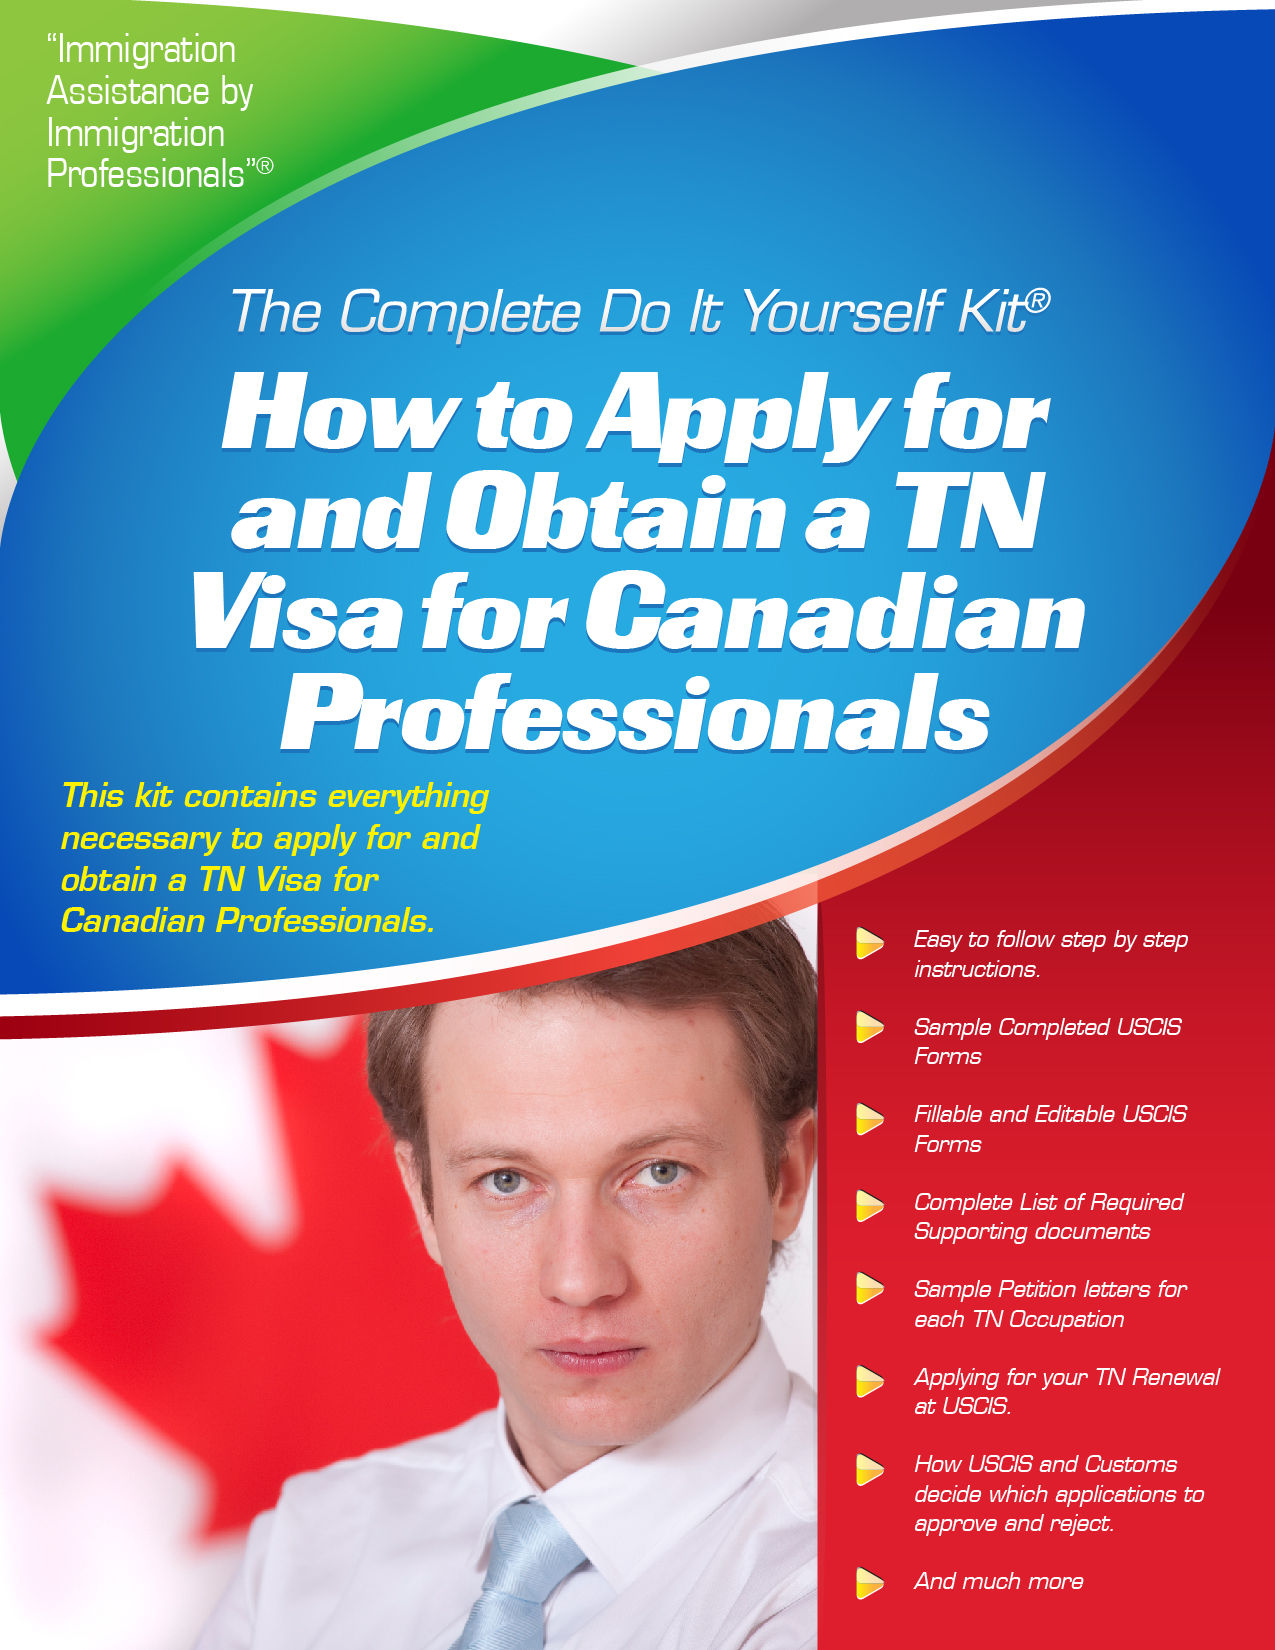 Tn visa for canadian professionals complete do it yourself kit tn visa for canadian professionals complete do it yourself kit solutioingenieria Choice Image